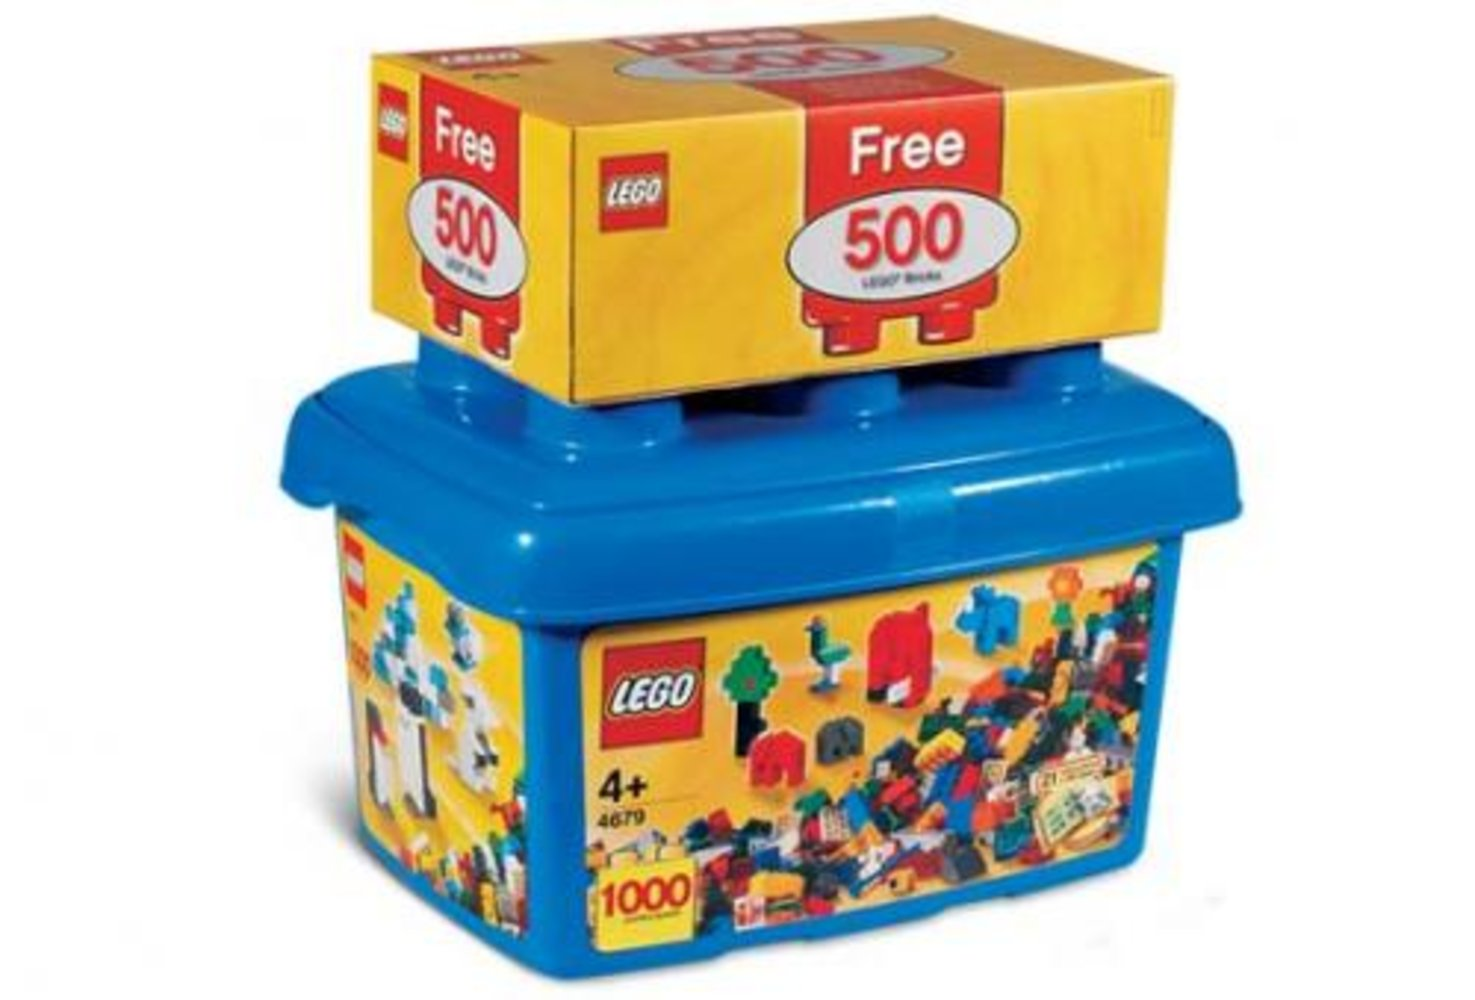 Bricks and Creations Tub - (TRU Exclusive)